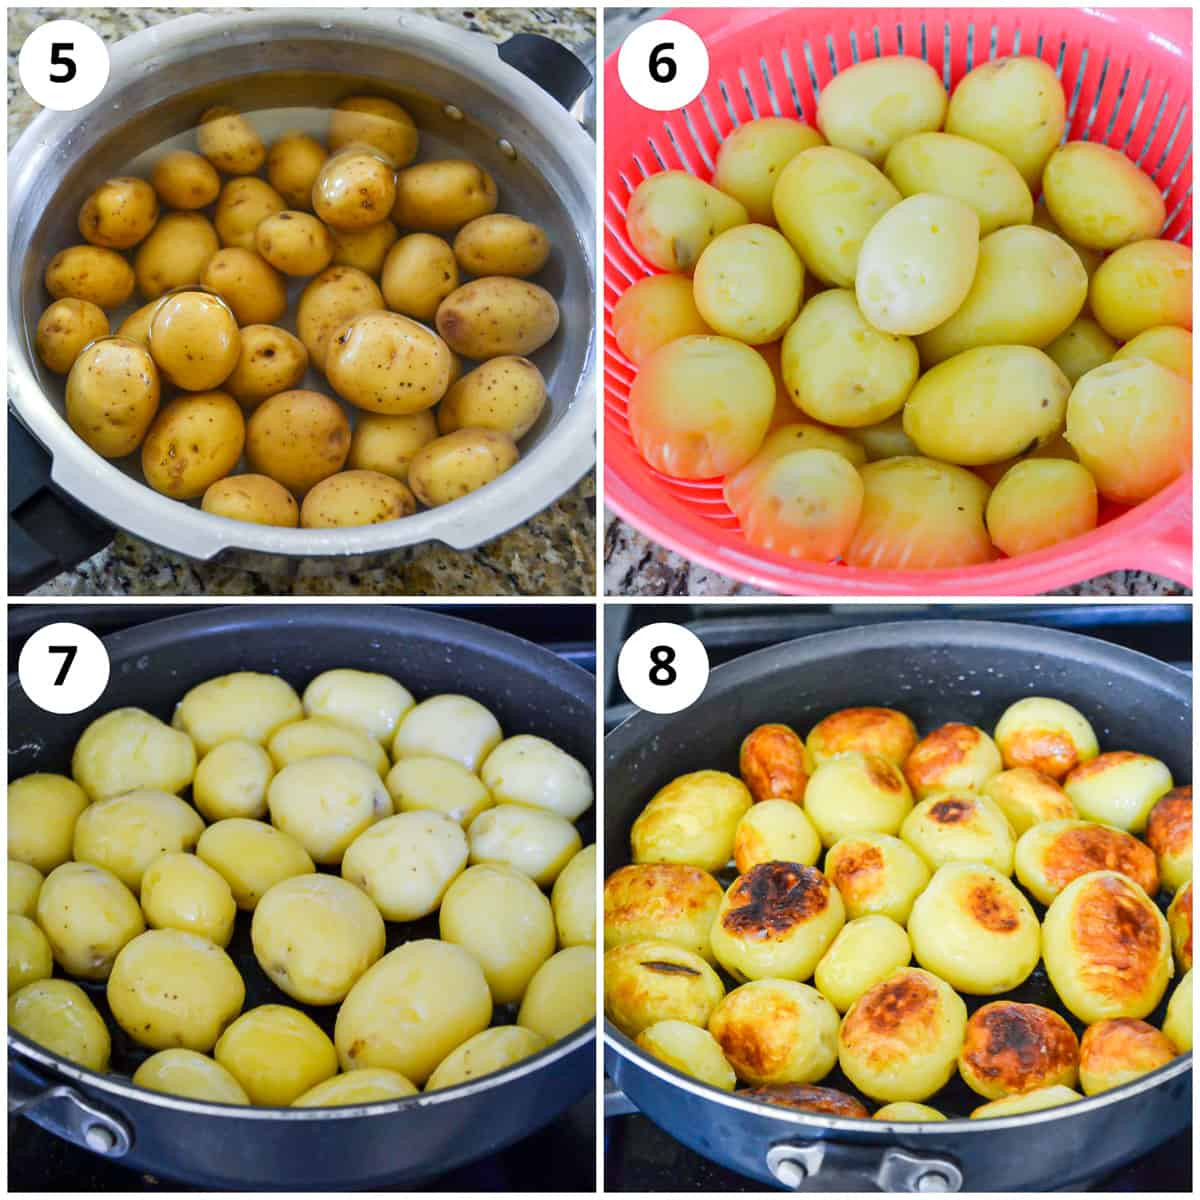 Showing how to cook and fry the potatoes for the recipe